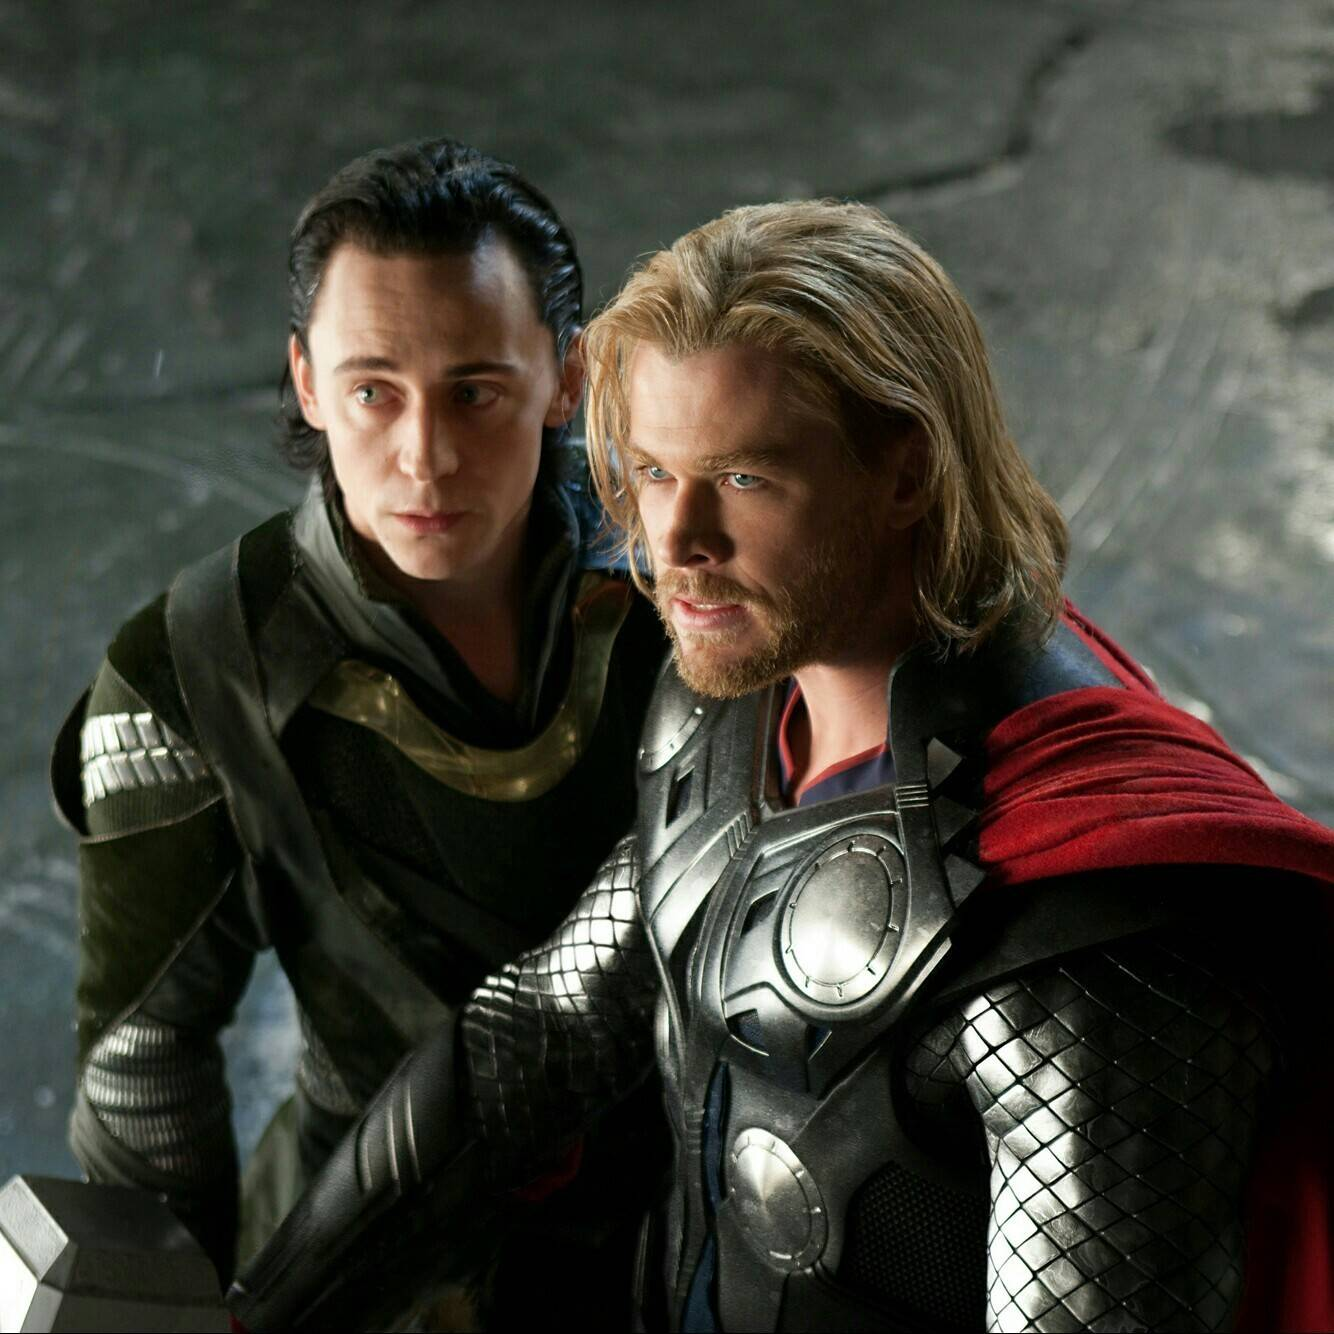 Loki (Tom Hiddleston) and Thor (Chris Hemsworth) in Thor (2011)